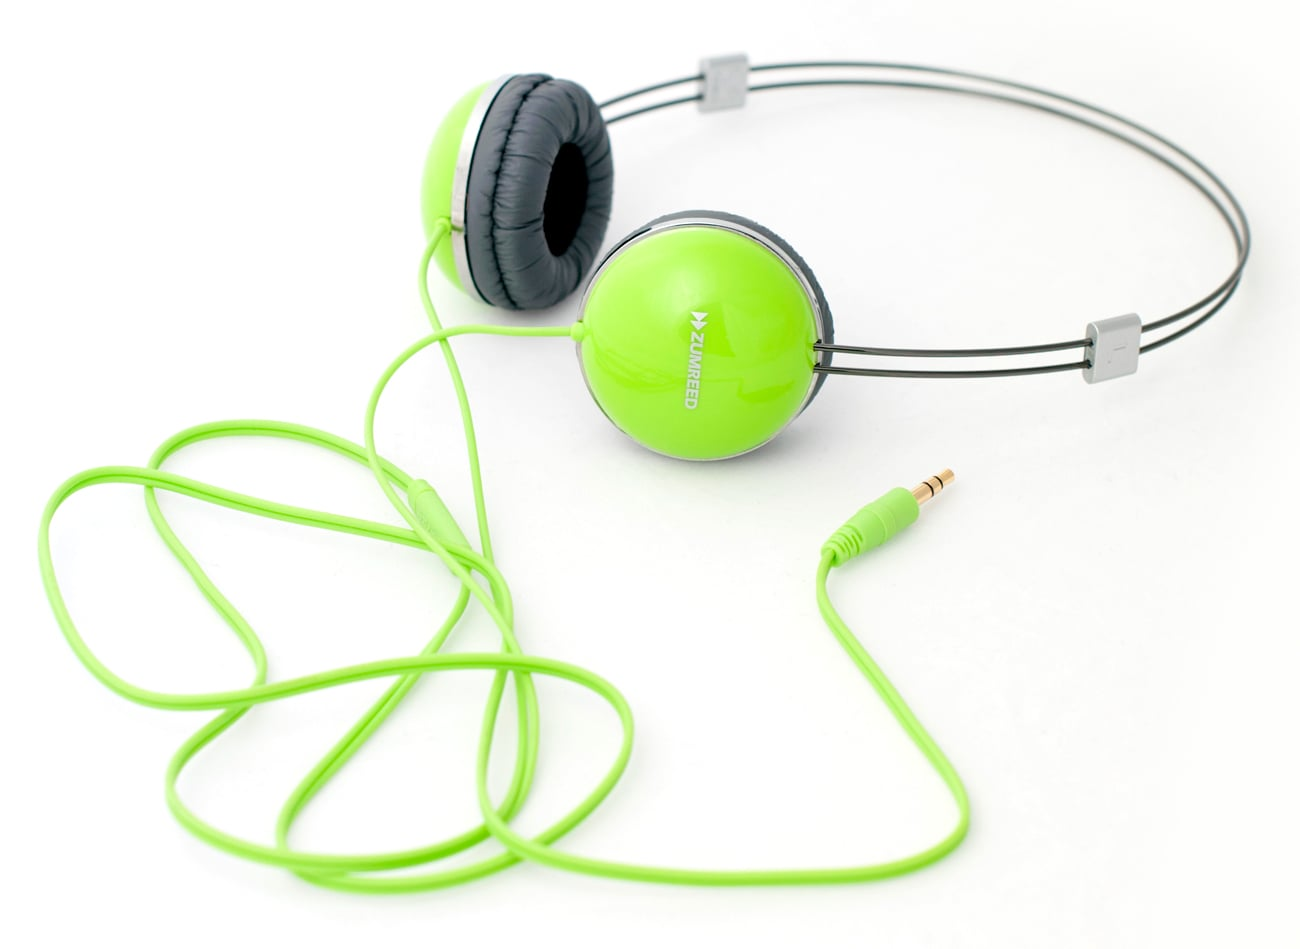 """Image result for Recently I was browsing through a FYE store, and I found what looked like a stunning pair of headphones for the amazingly low price of 12 dollars. They're huge... they look like super-powerful, noise-canceling headphones. They've got a volume control for each ear and a very adjustable bridge between the speakers. The headphones also have of of those sleek, """"golden"""" connections. Needless to say, I was excited and bought them almost immediately. I rushed home and popped them into my mp3 player, and was immediately disappointed. The bass sounded like it was almost suffering. What do I mean by this? Imagine when someone drives by your house at 3 am, and they have obnoxious music playing as loud as they possibly can. Do you know that sound? The sound that sounds like the car is dying a little bit at a time because of that bass? It will remind you of that. The speakers just can't quite handle how much the headphones want to crank out volume, and it simply doesn't work. Speaking of volume, there isn't much of any. I cranked the mp3 player up as high as it would go, (which would be literally painful, if using any other headphones I own) and yet it still simply was not very loud. The exterior is very confusing. One look and you would assume that the headphones were a powerhouse, and yet upon further inspection, they're nothing of the sort. I suppose if I had much at all good to say about these headphones it would be that they are very comfortable, which is important to me. Some headphones are incredible performance-wise, and yet very, very uncomfortable. (An example of this is the SkullCandy brand headphones, but that is a review for another time!) Also, the volume control on each ear can come in a lot of handy. It's proven itself useful when I play video games on the computer. The dual volume control allows me to hear the game, and yet hear what is happening around me, just in case the phone rings or something around the house needs my attention. So, yes, t"""